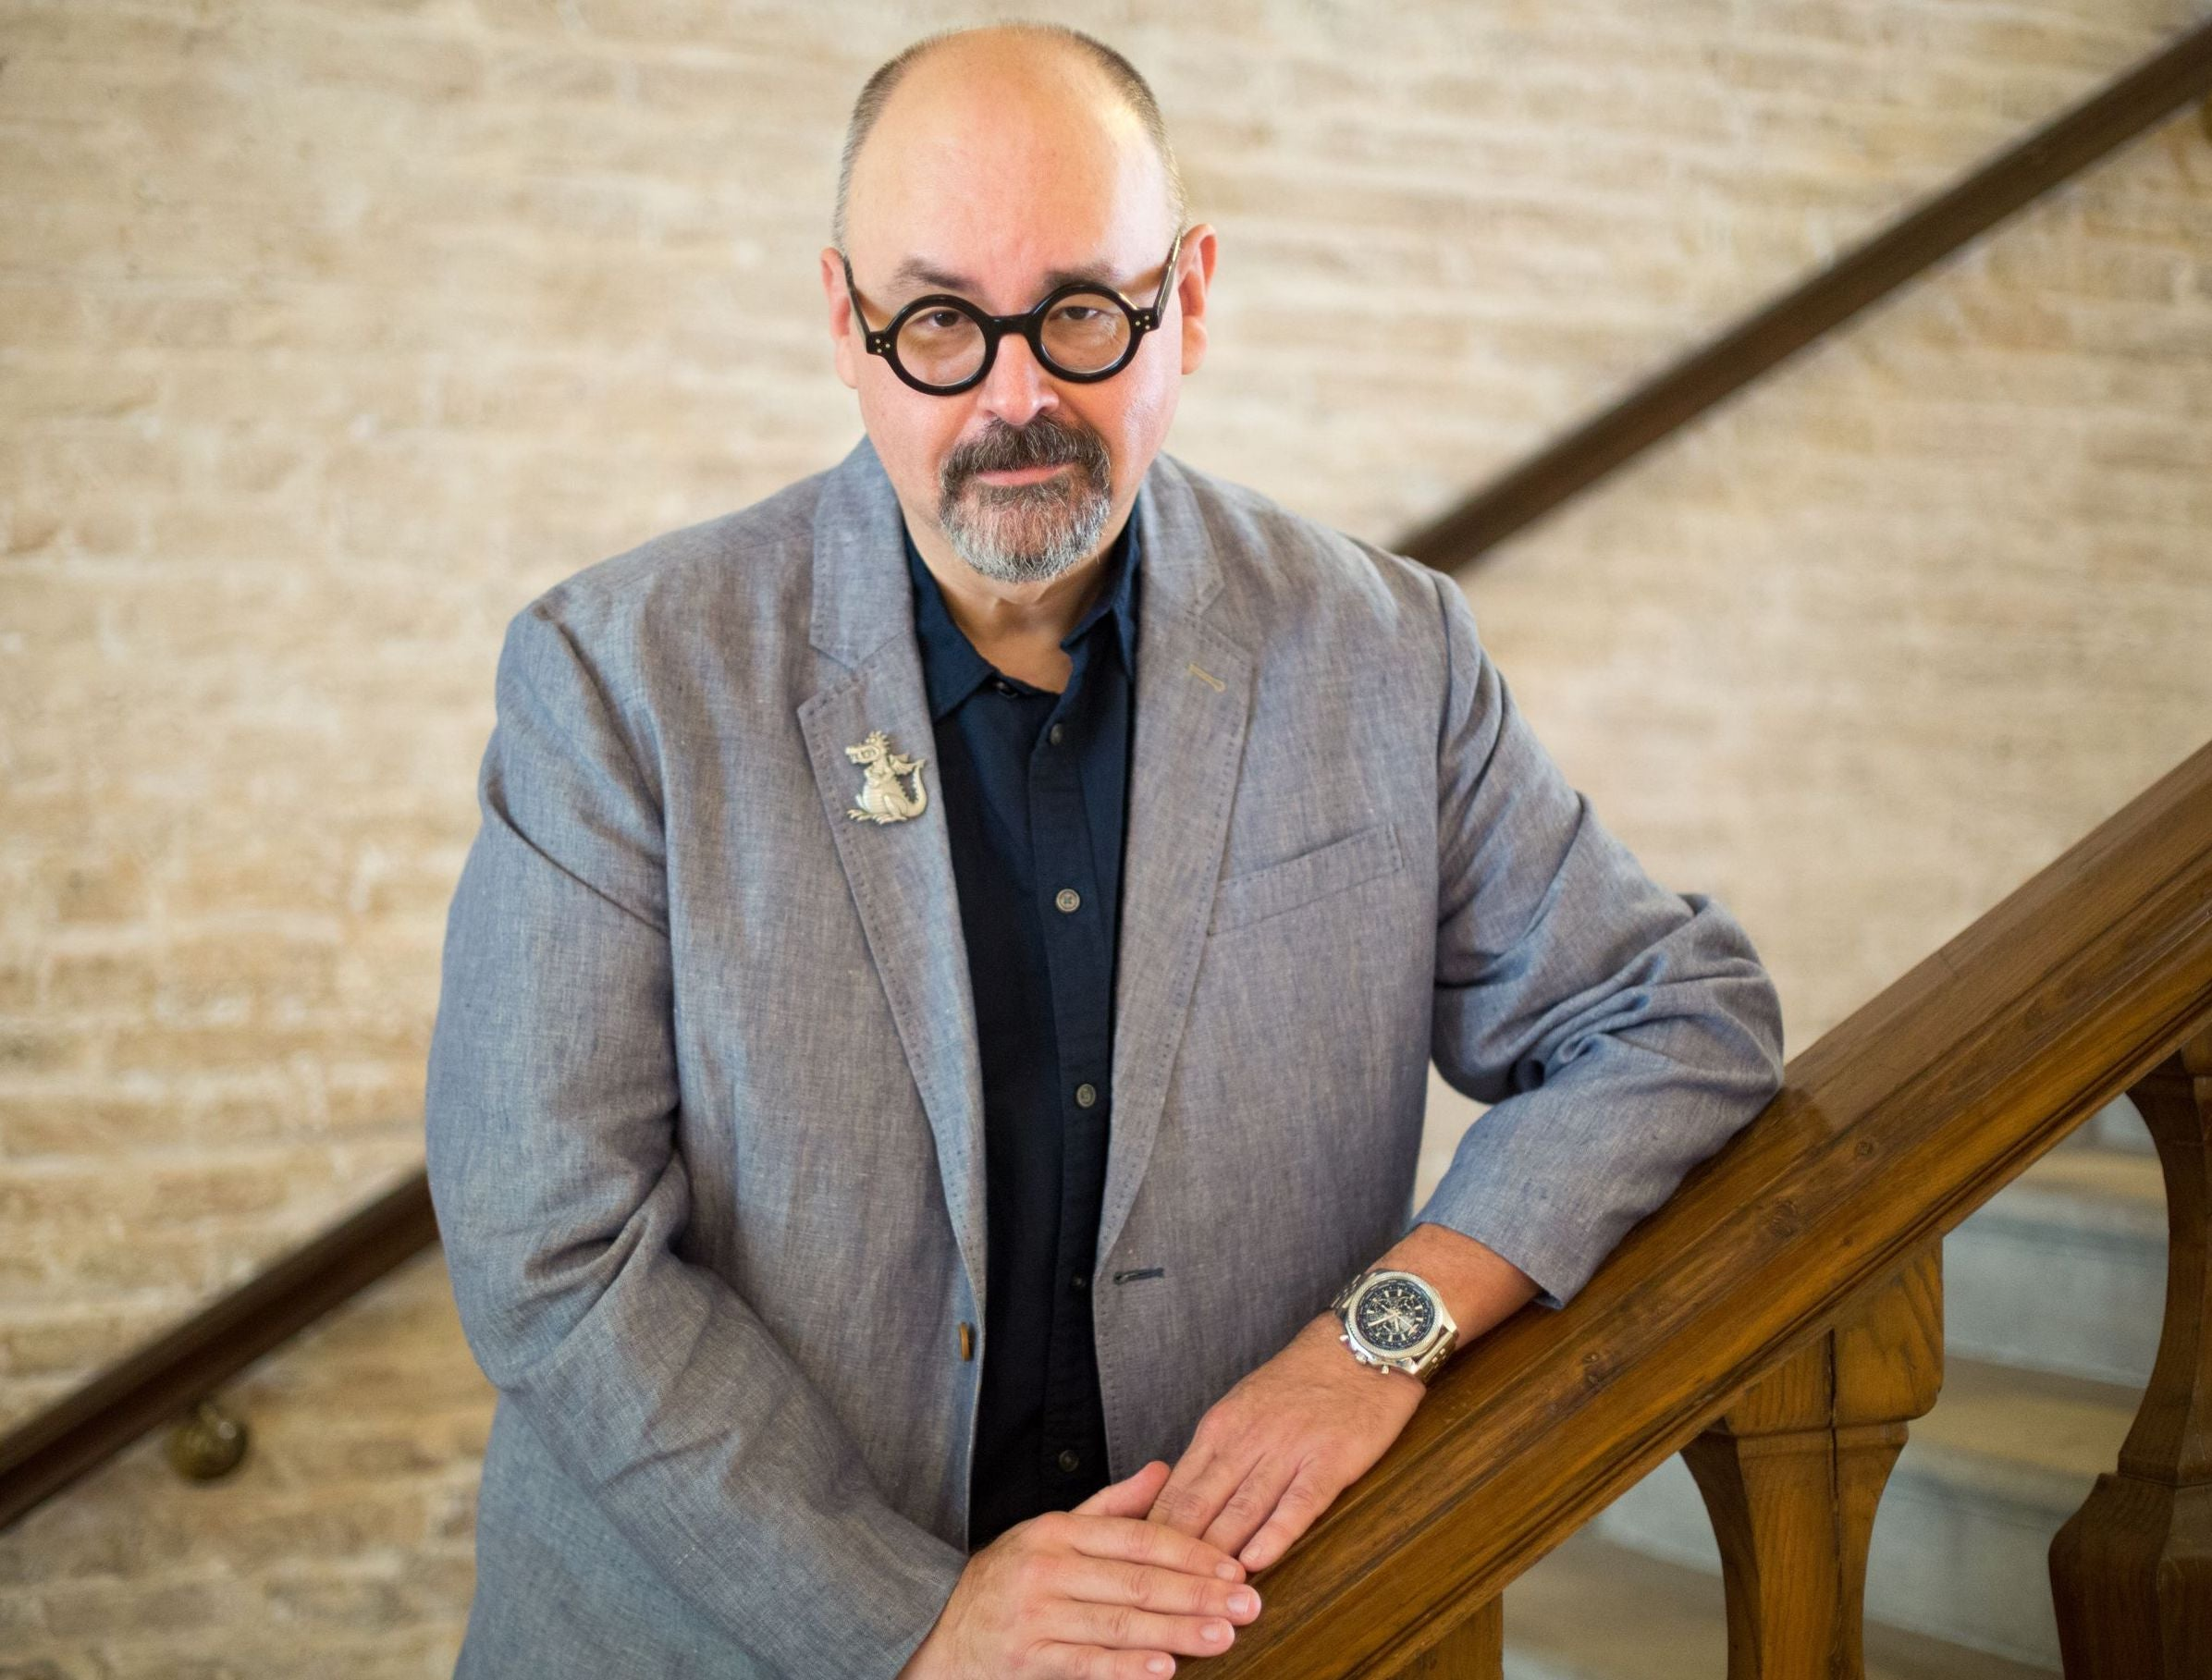 Carlos Ruiz Zafon Death The Shadow Of The Wind Author Dies From Cancer Aged 55 The Independent The Independent